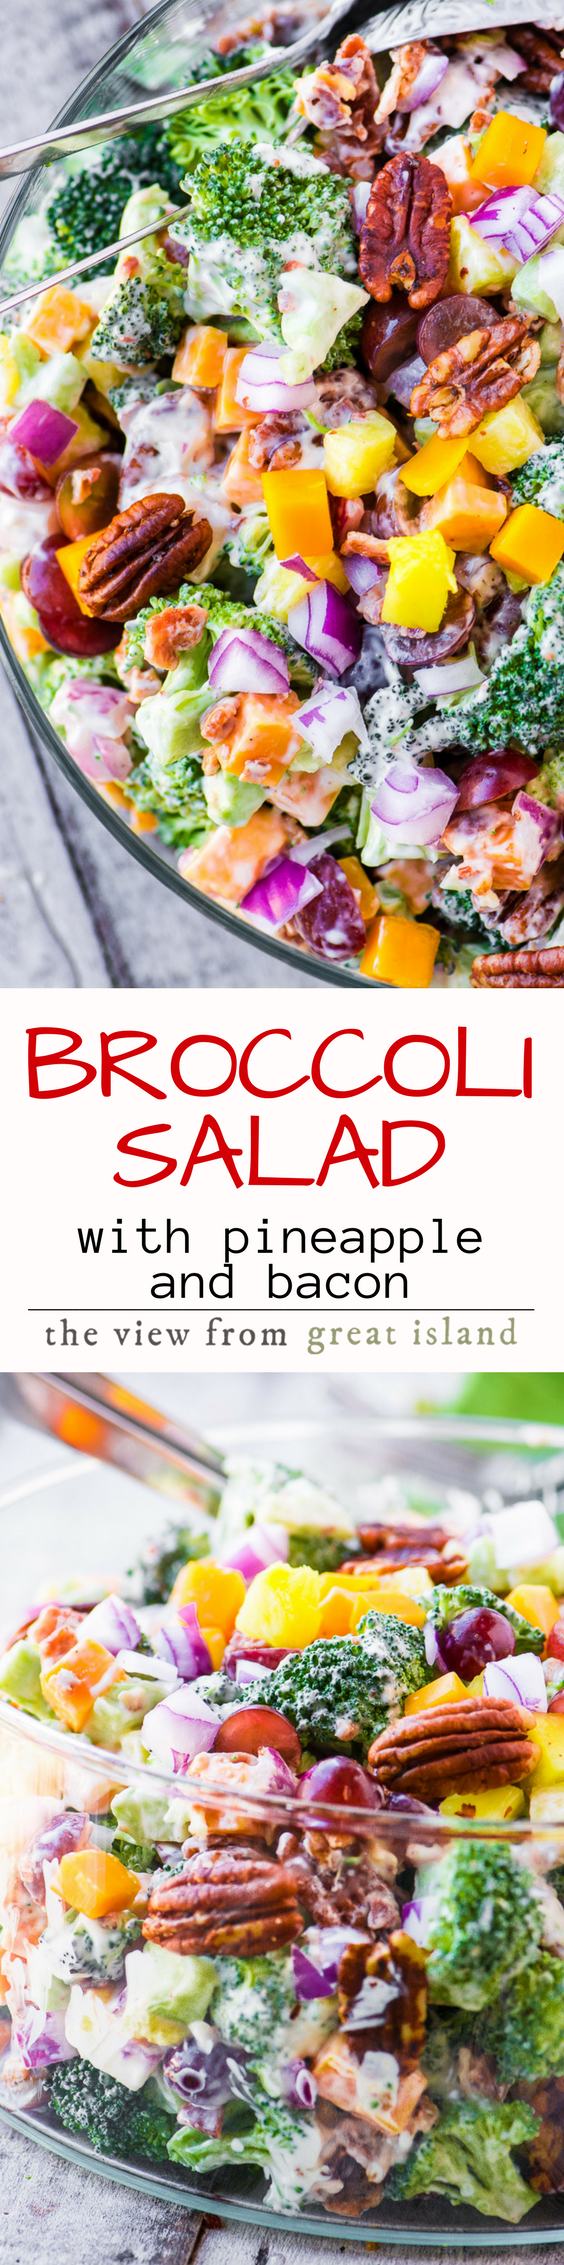 Broccoli Salad with Pineapple, Bacon and Spiced Pecans ~ This summer classic has an extra burst of sweetness from fresh pineapple, and lots of crunch from bacon and chili rubbed pecans. #salad #broccoli #bacon #summersalad #picnicsalad #barbecue #potluck #healthy #pineapple #mayosalad